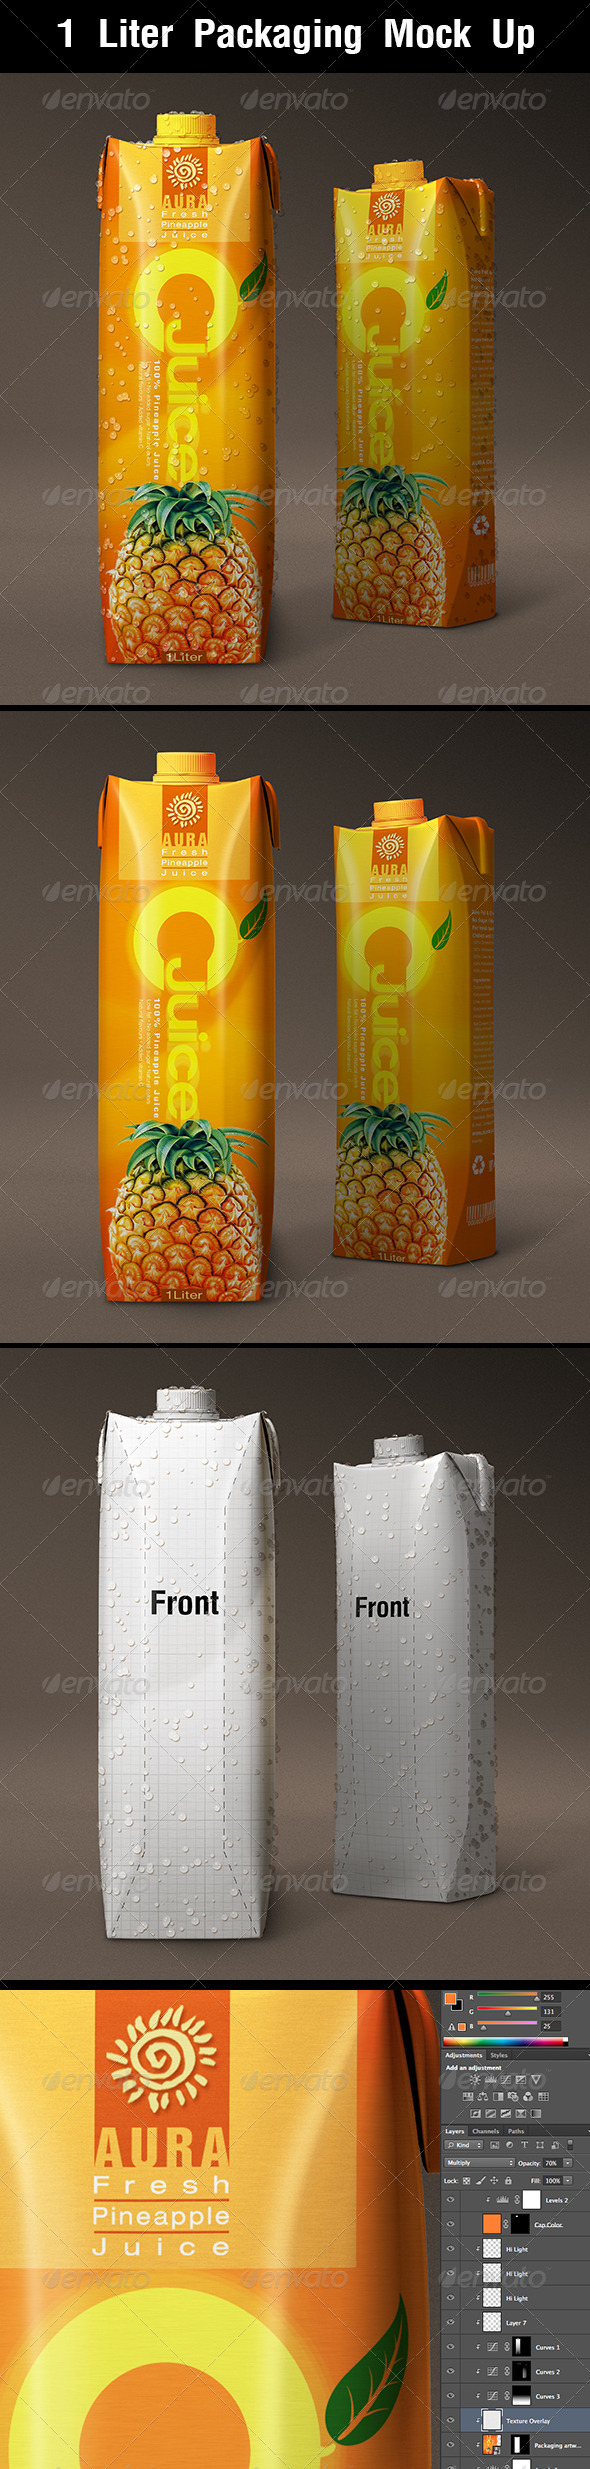 1 Liter Carton Packaging Mock Up